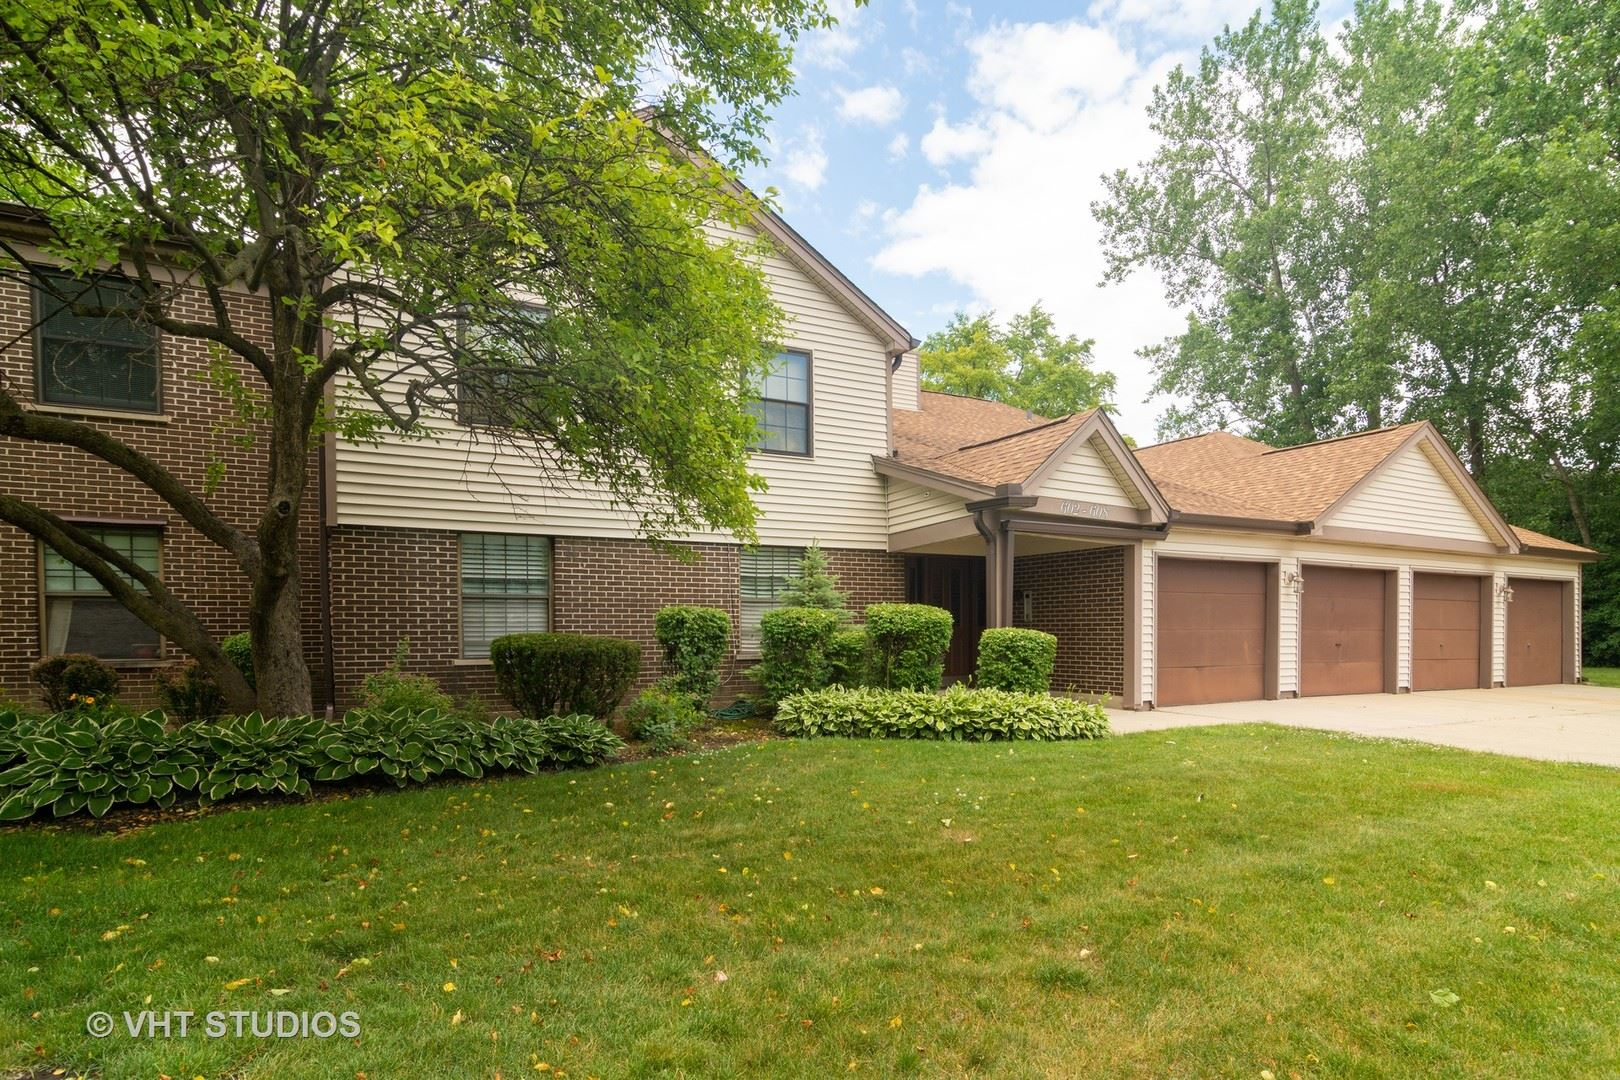 606 Hapsfield Lane S #1, Buffalo Grove, IL 60089 - #: 10758074